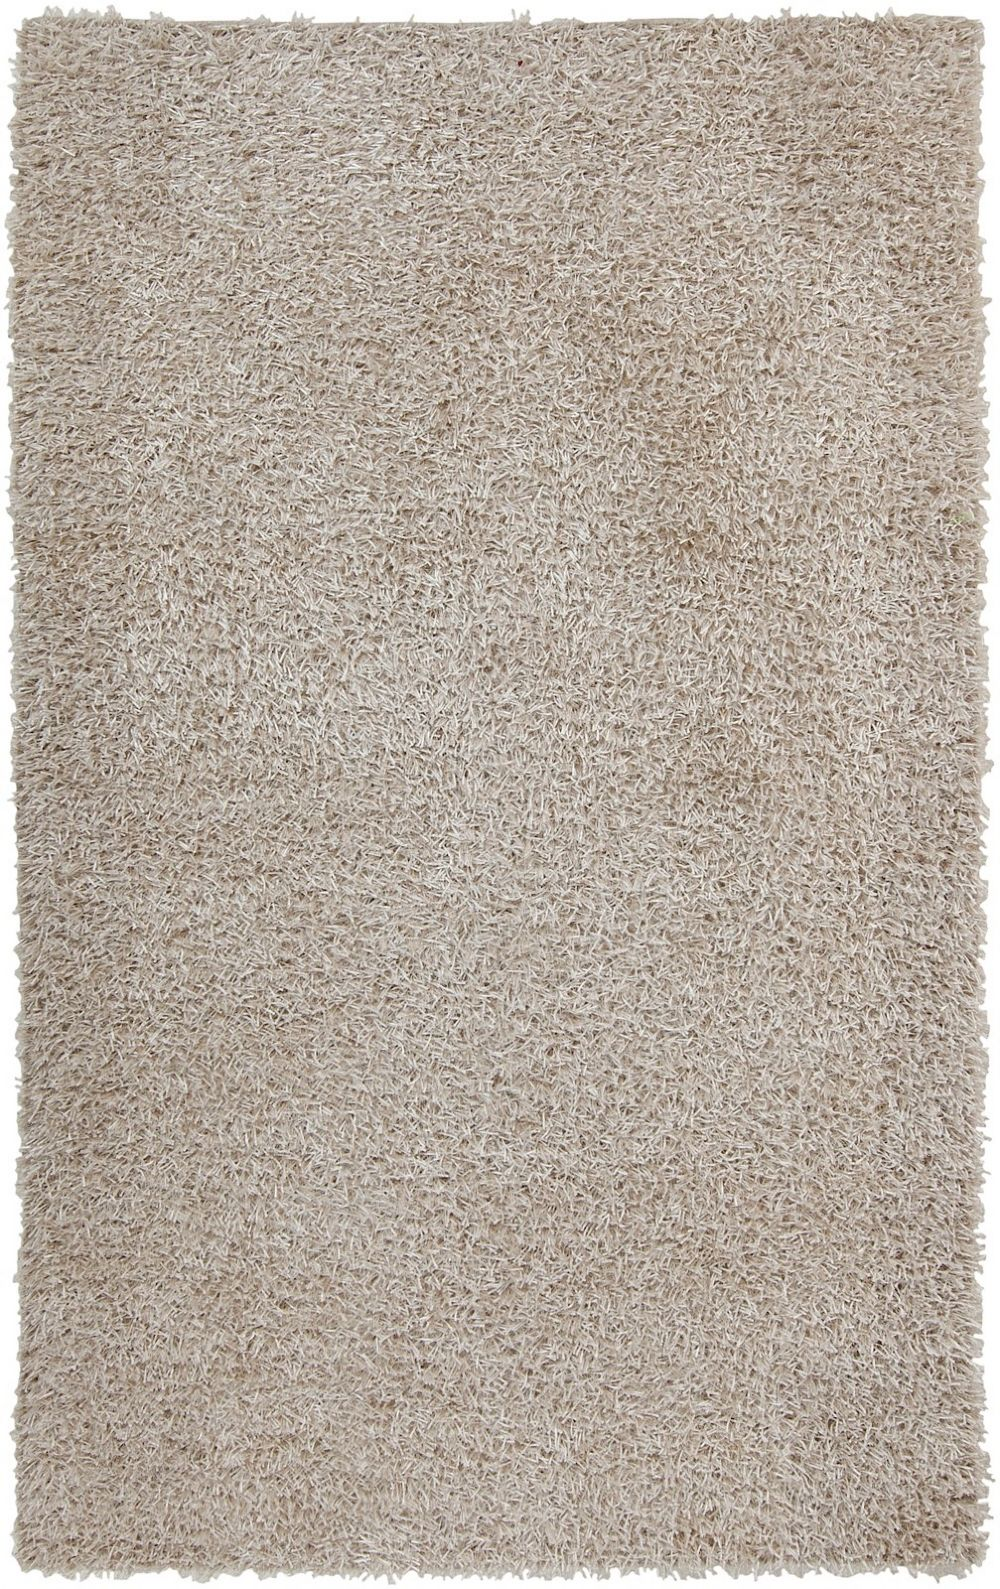 surya taz shag area rug collection